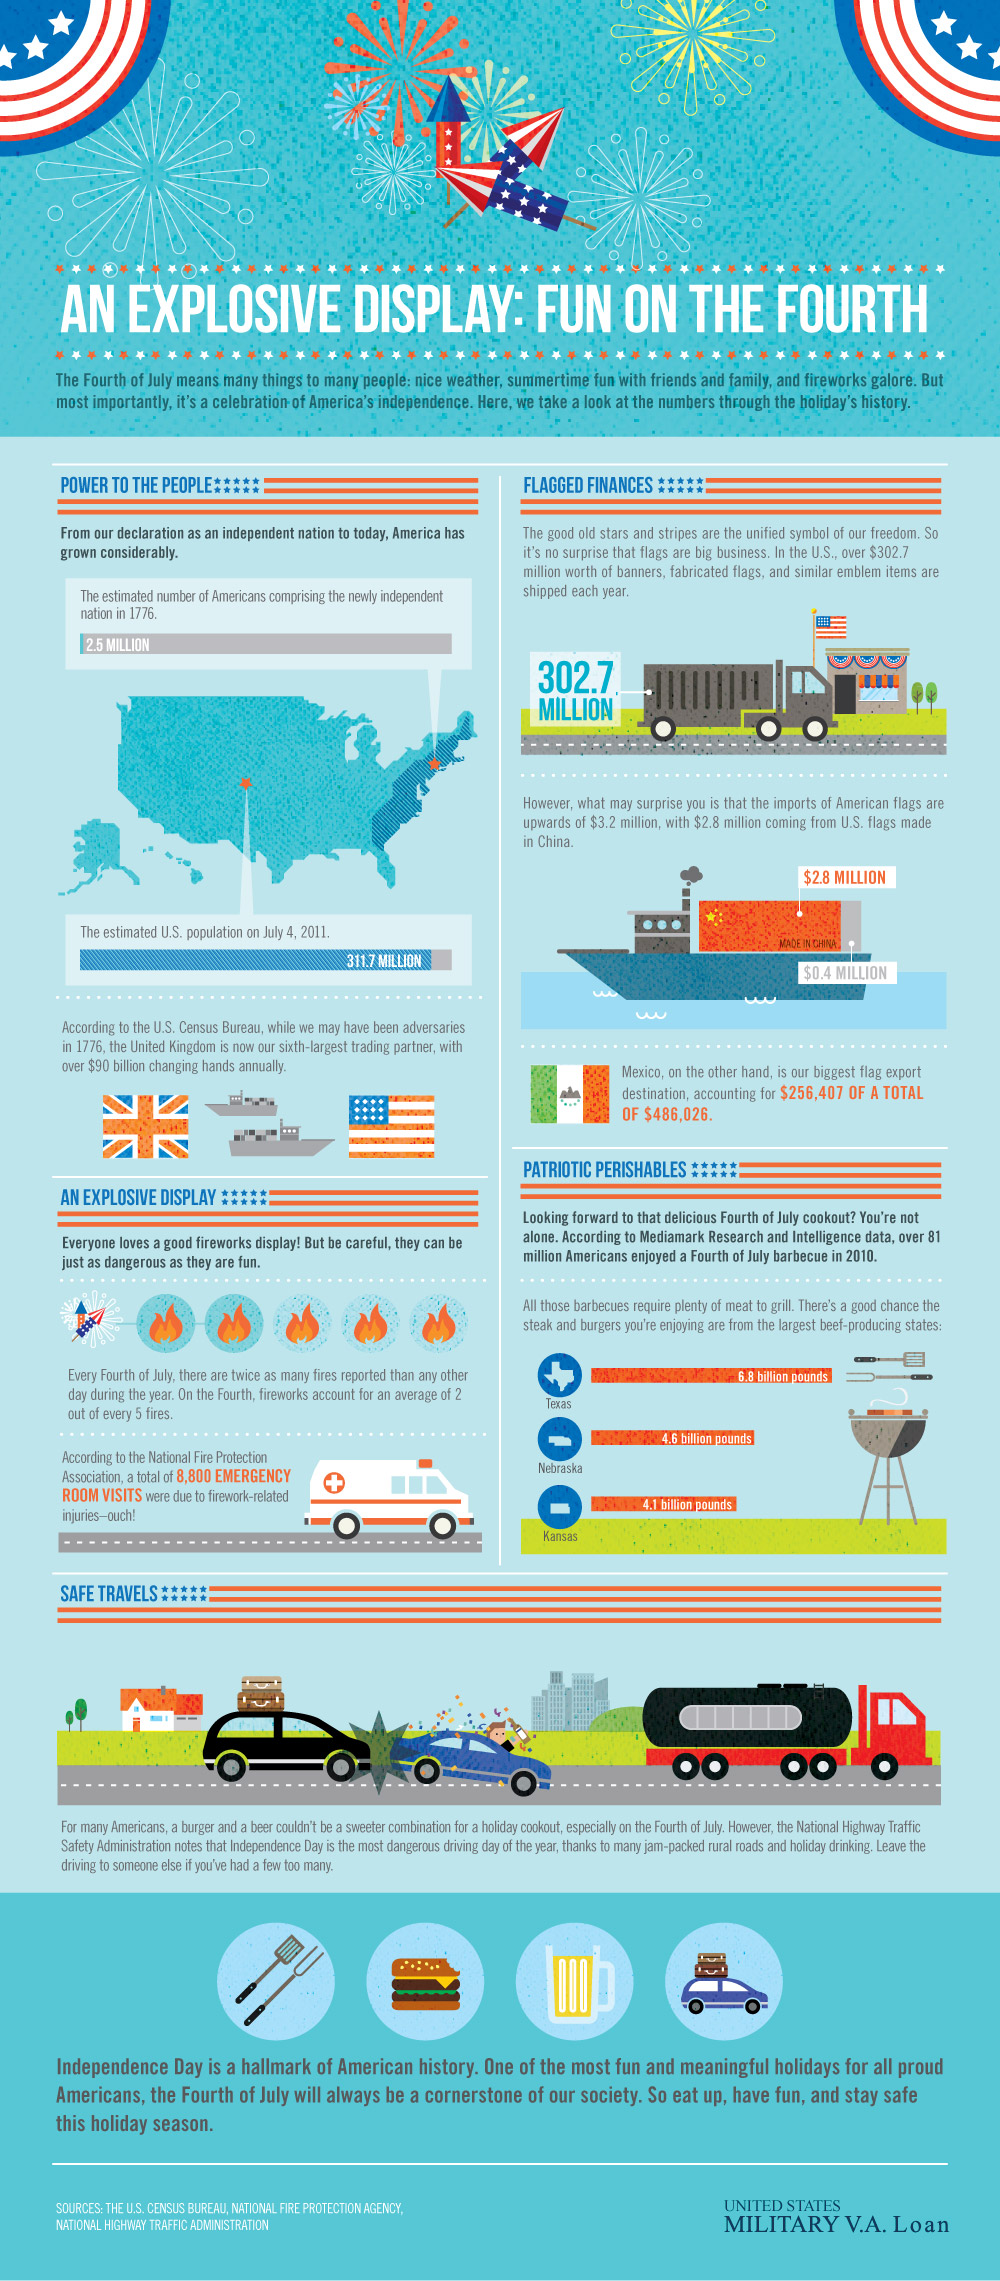 Fun-On-July-4th-infographic